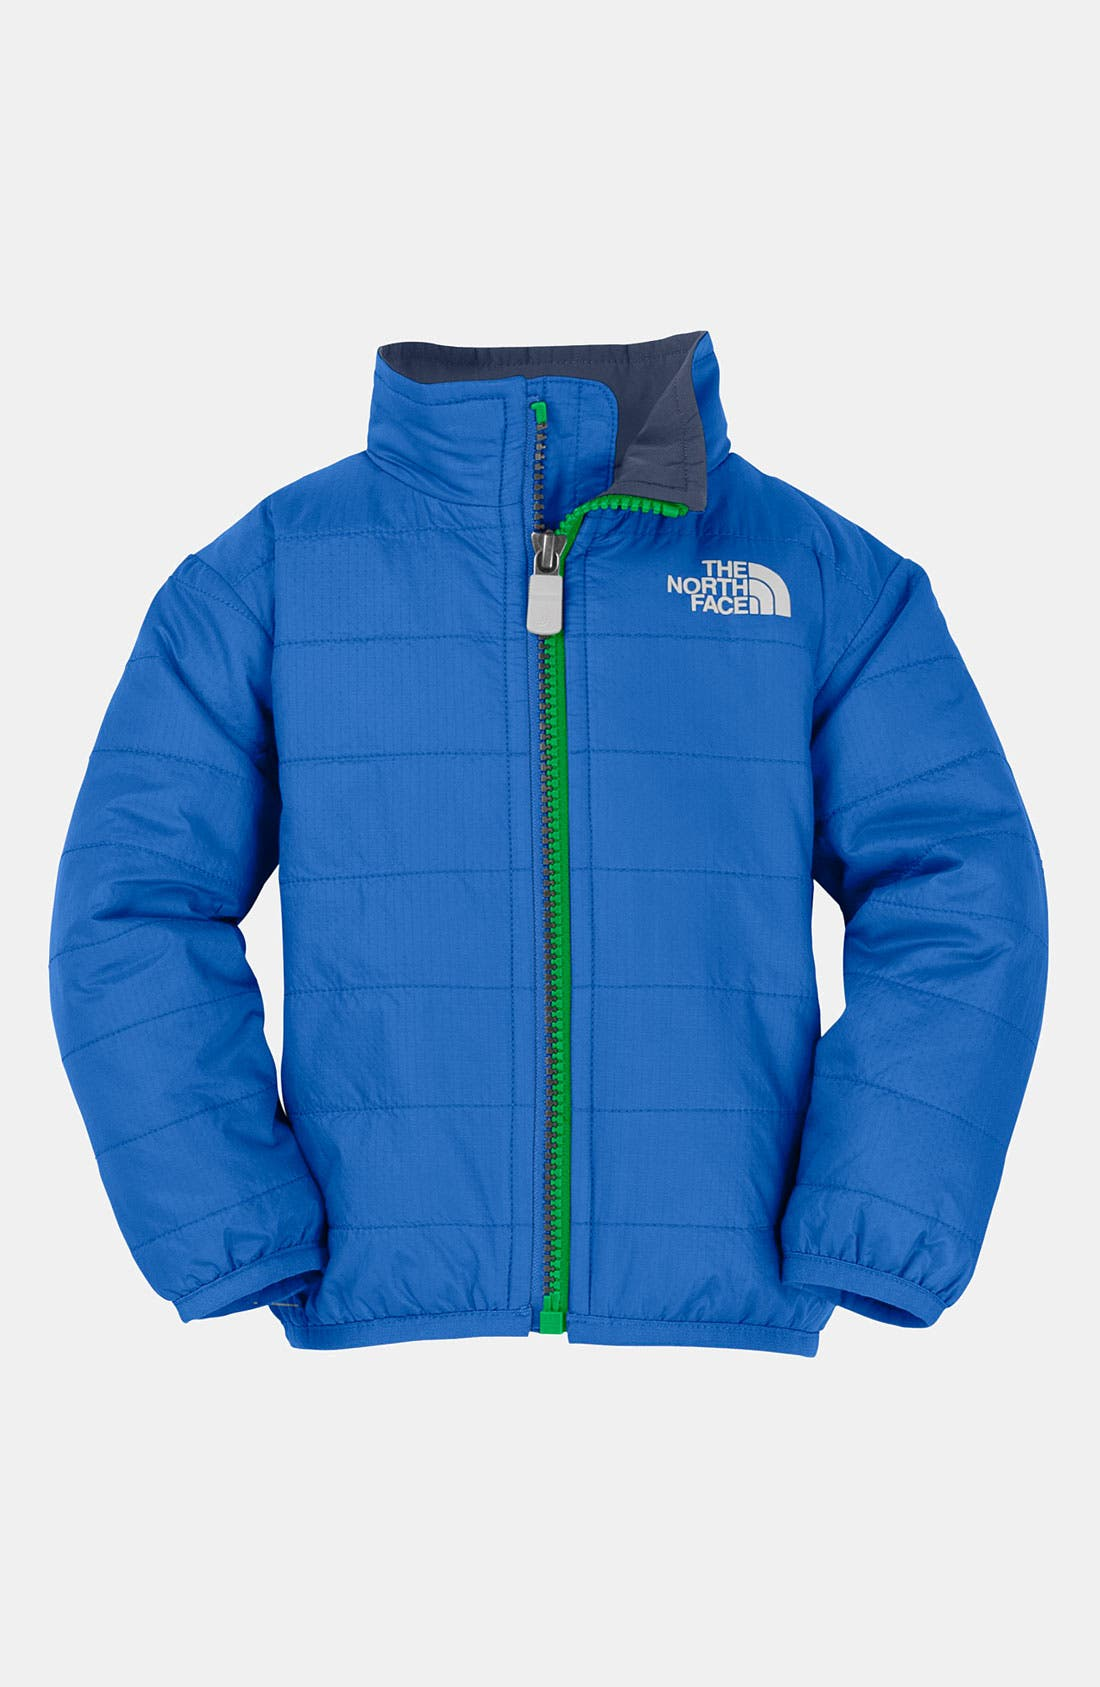 Alternate Image 1 Selected - The North Face 'Blaze' Jacket (Baby)